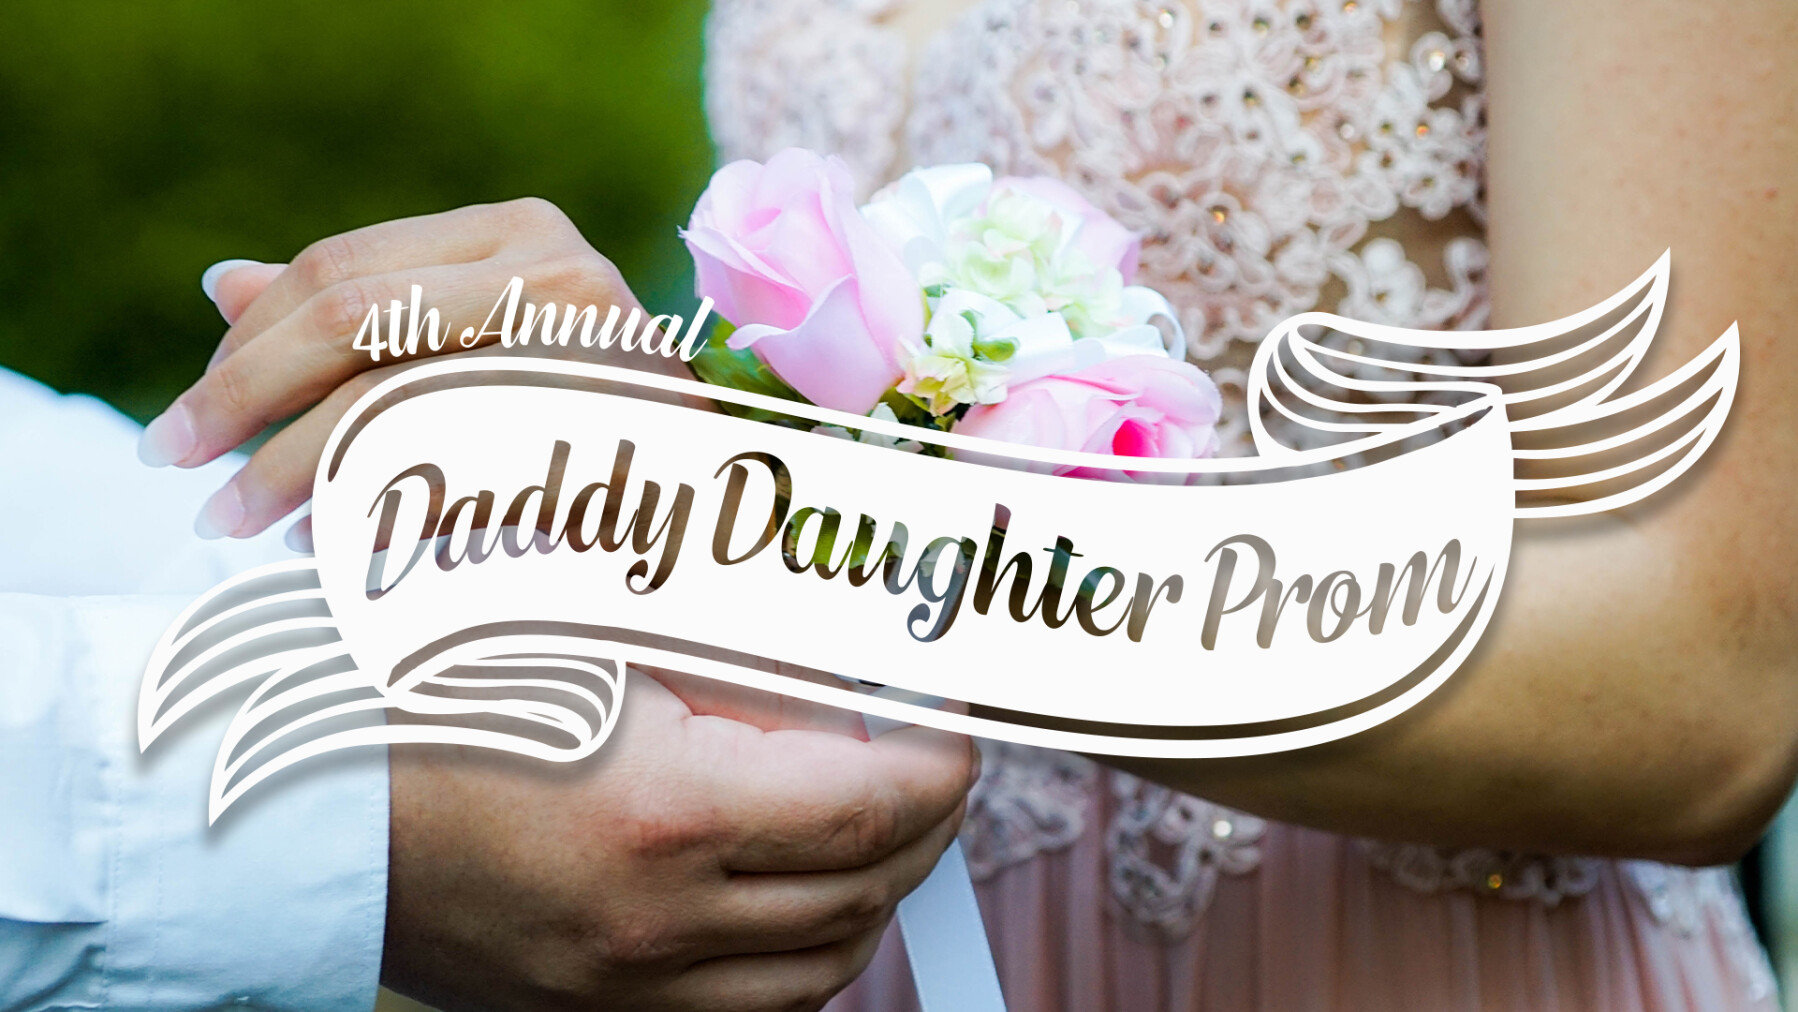 4th Annual Daddy Daughter Prom